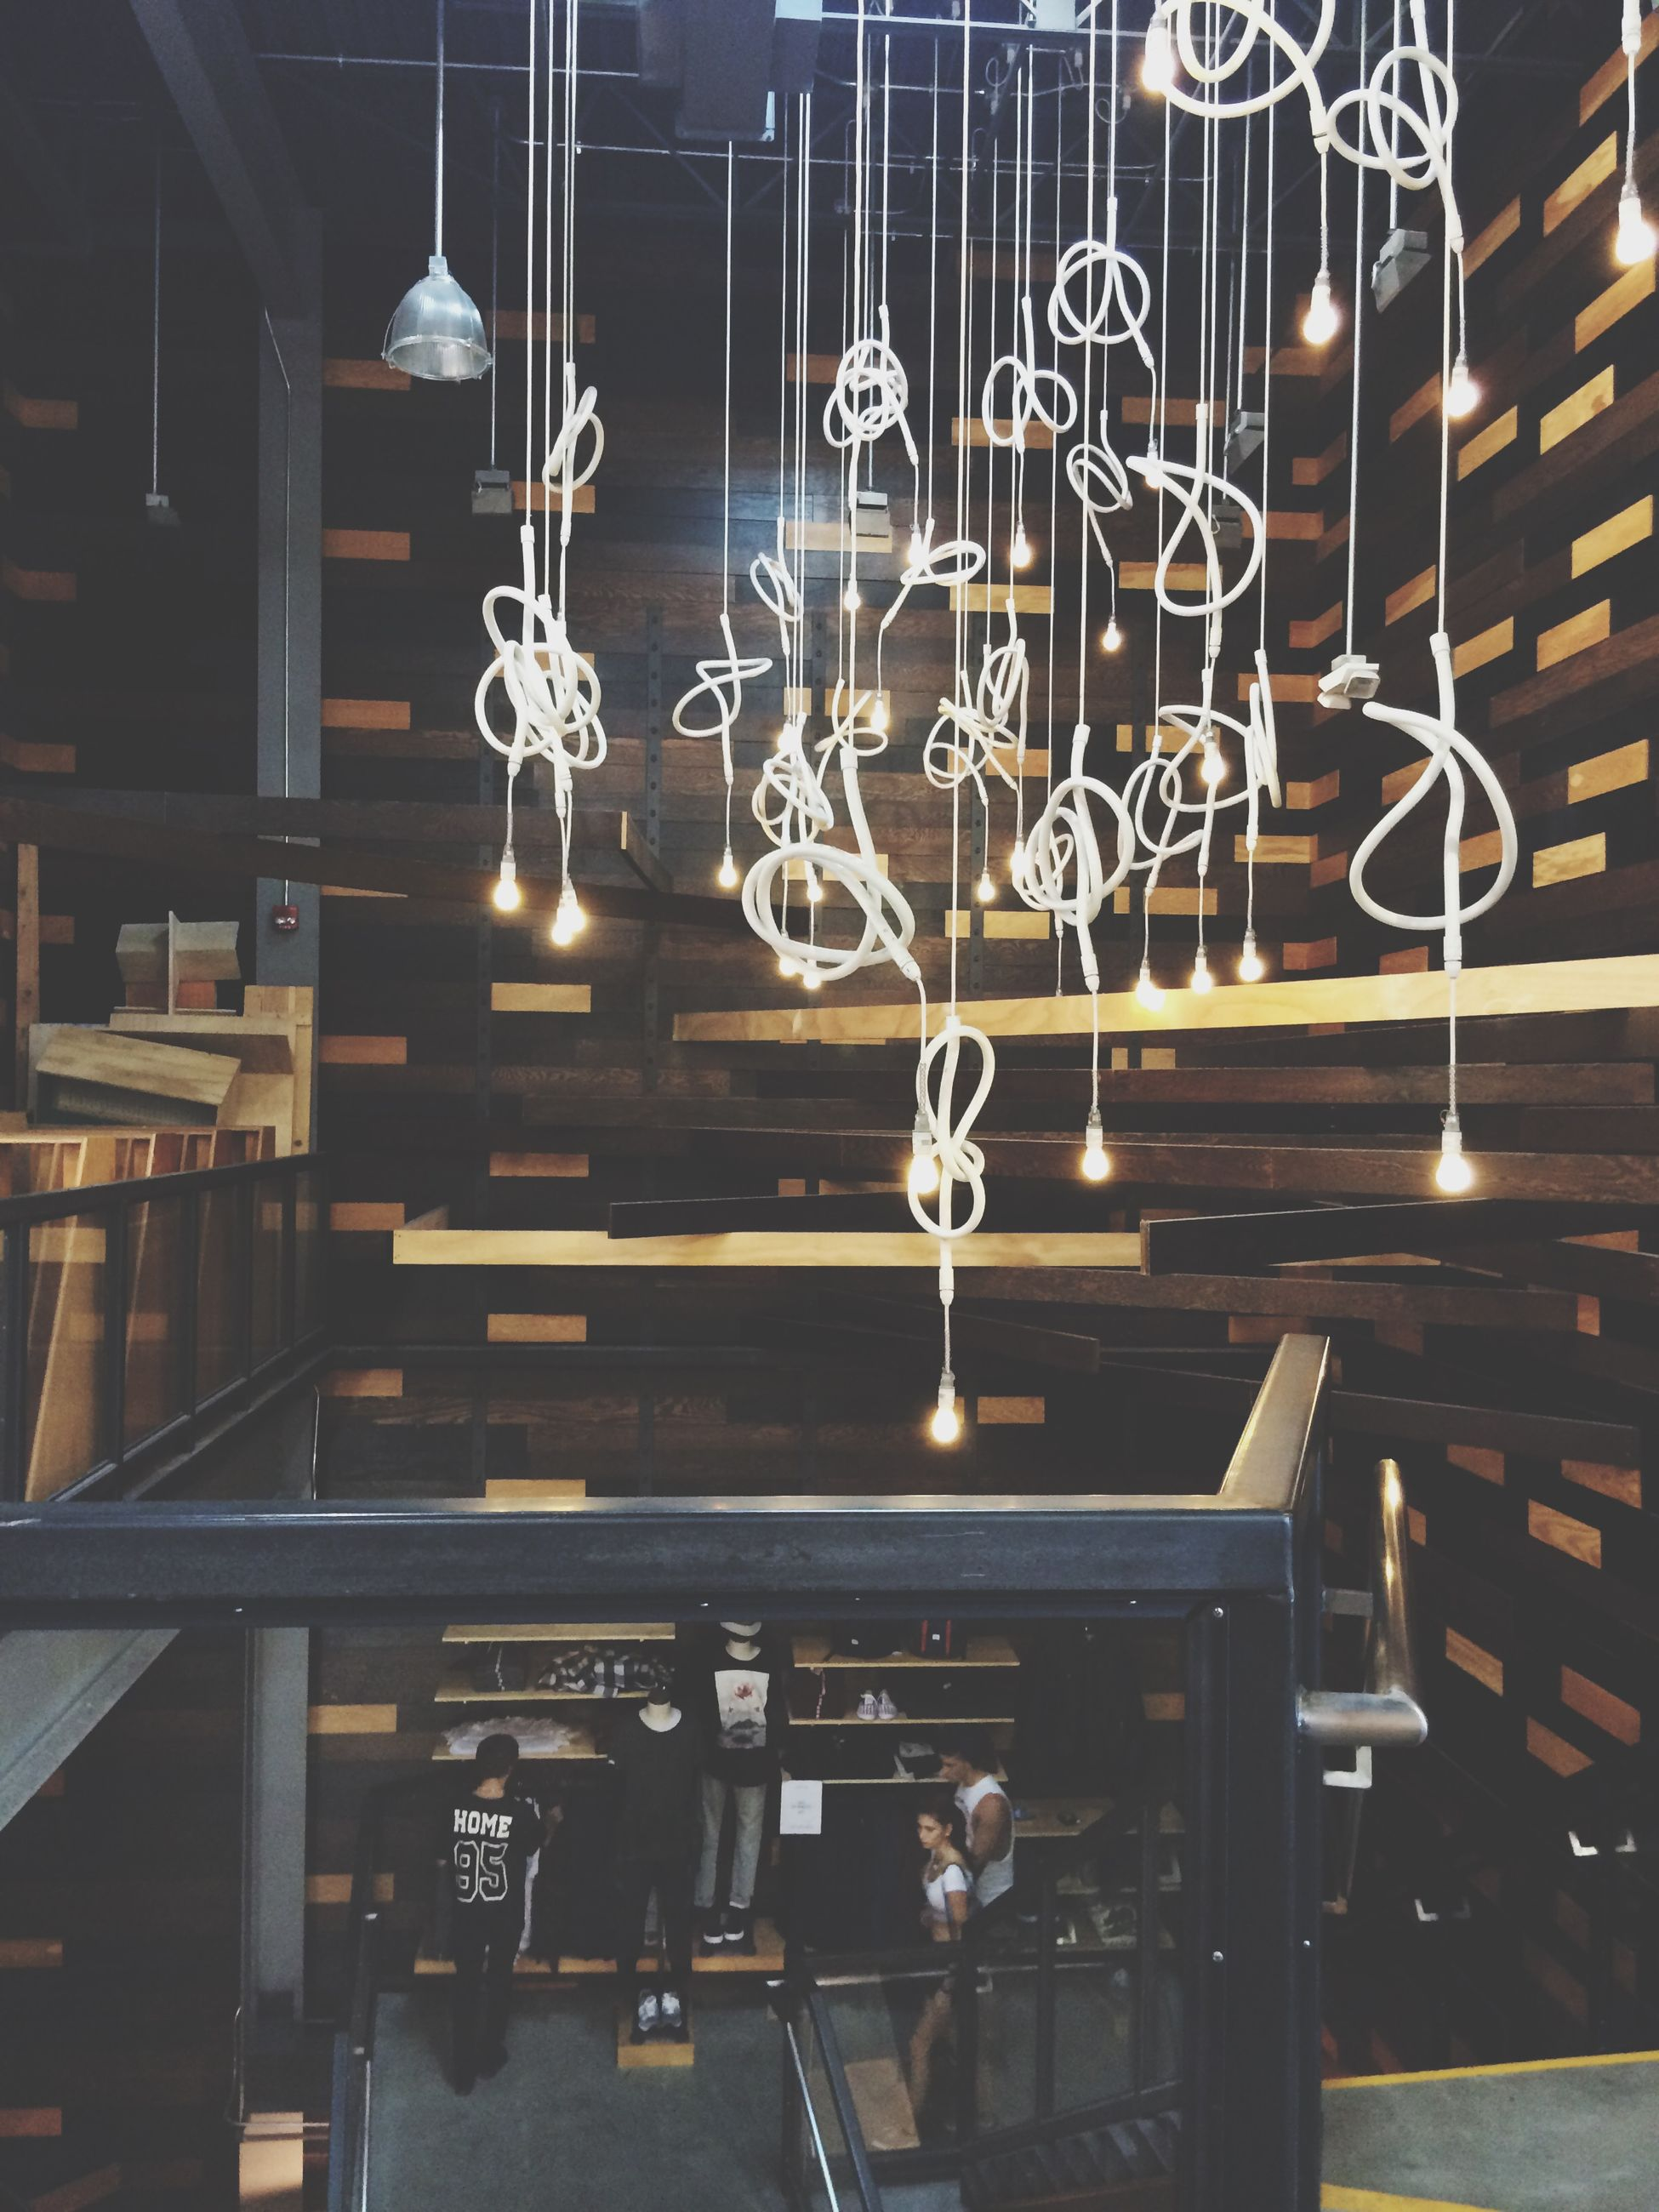 indoors, hanging, illuminated, lighting equipment, decoration, built structure, architecture, wall - building feature, window, low angle view, ceiling, no people, art and craft, electric lamp, glass - material, electric light, chair, table, in a row, store